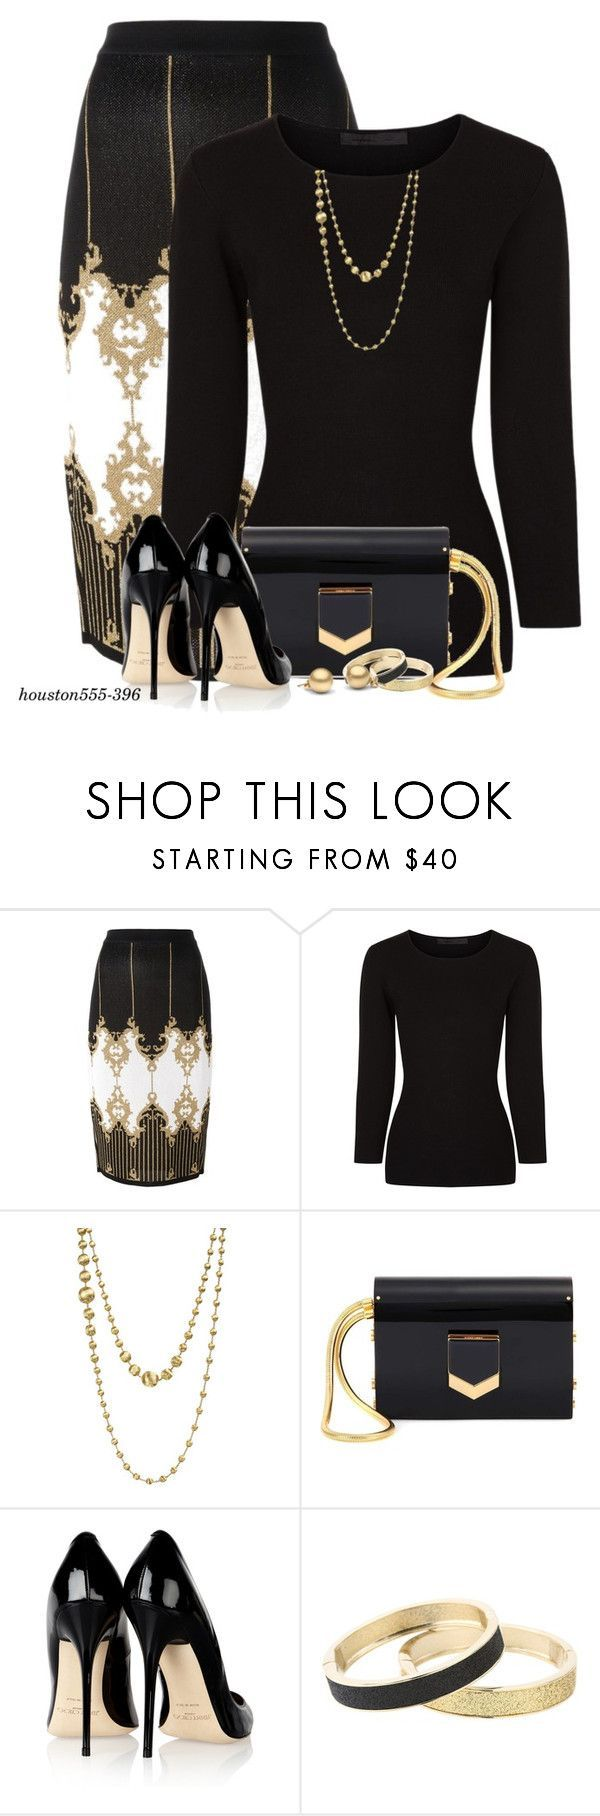 """Jimmy Choo Matching Bag & Shoes"" by houston555-396 ❤ liked on Polyvore featuring Balmain, Alexander Wang, Marco Bicego, Jimmy Choo and Betsey Johnson"